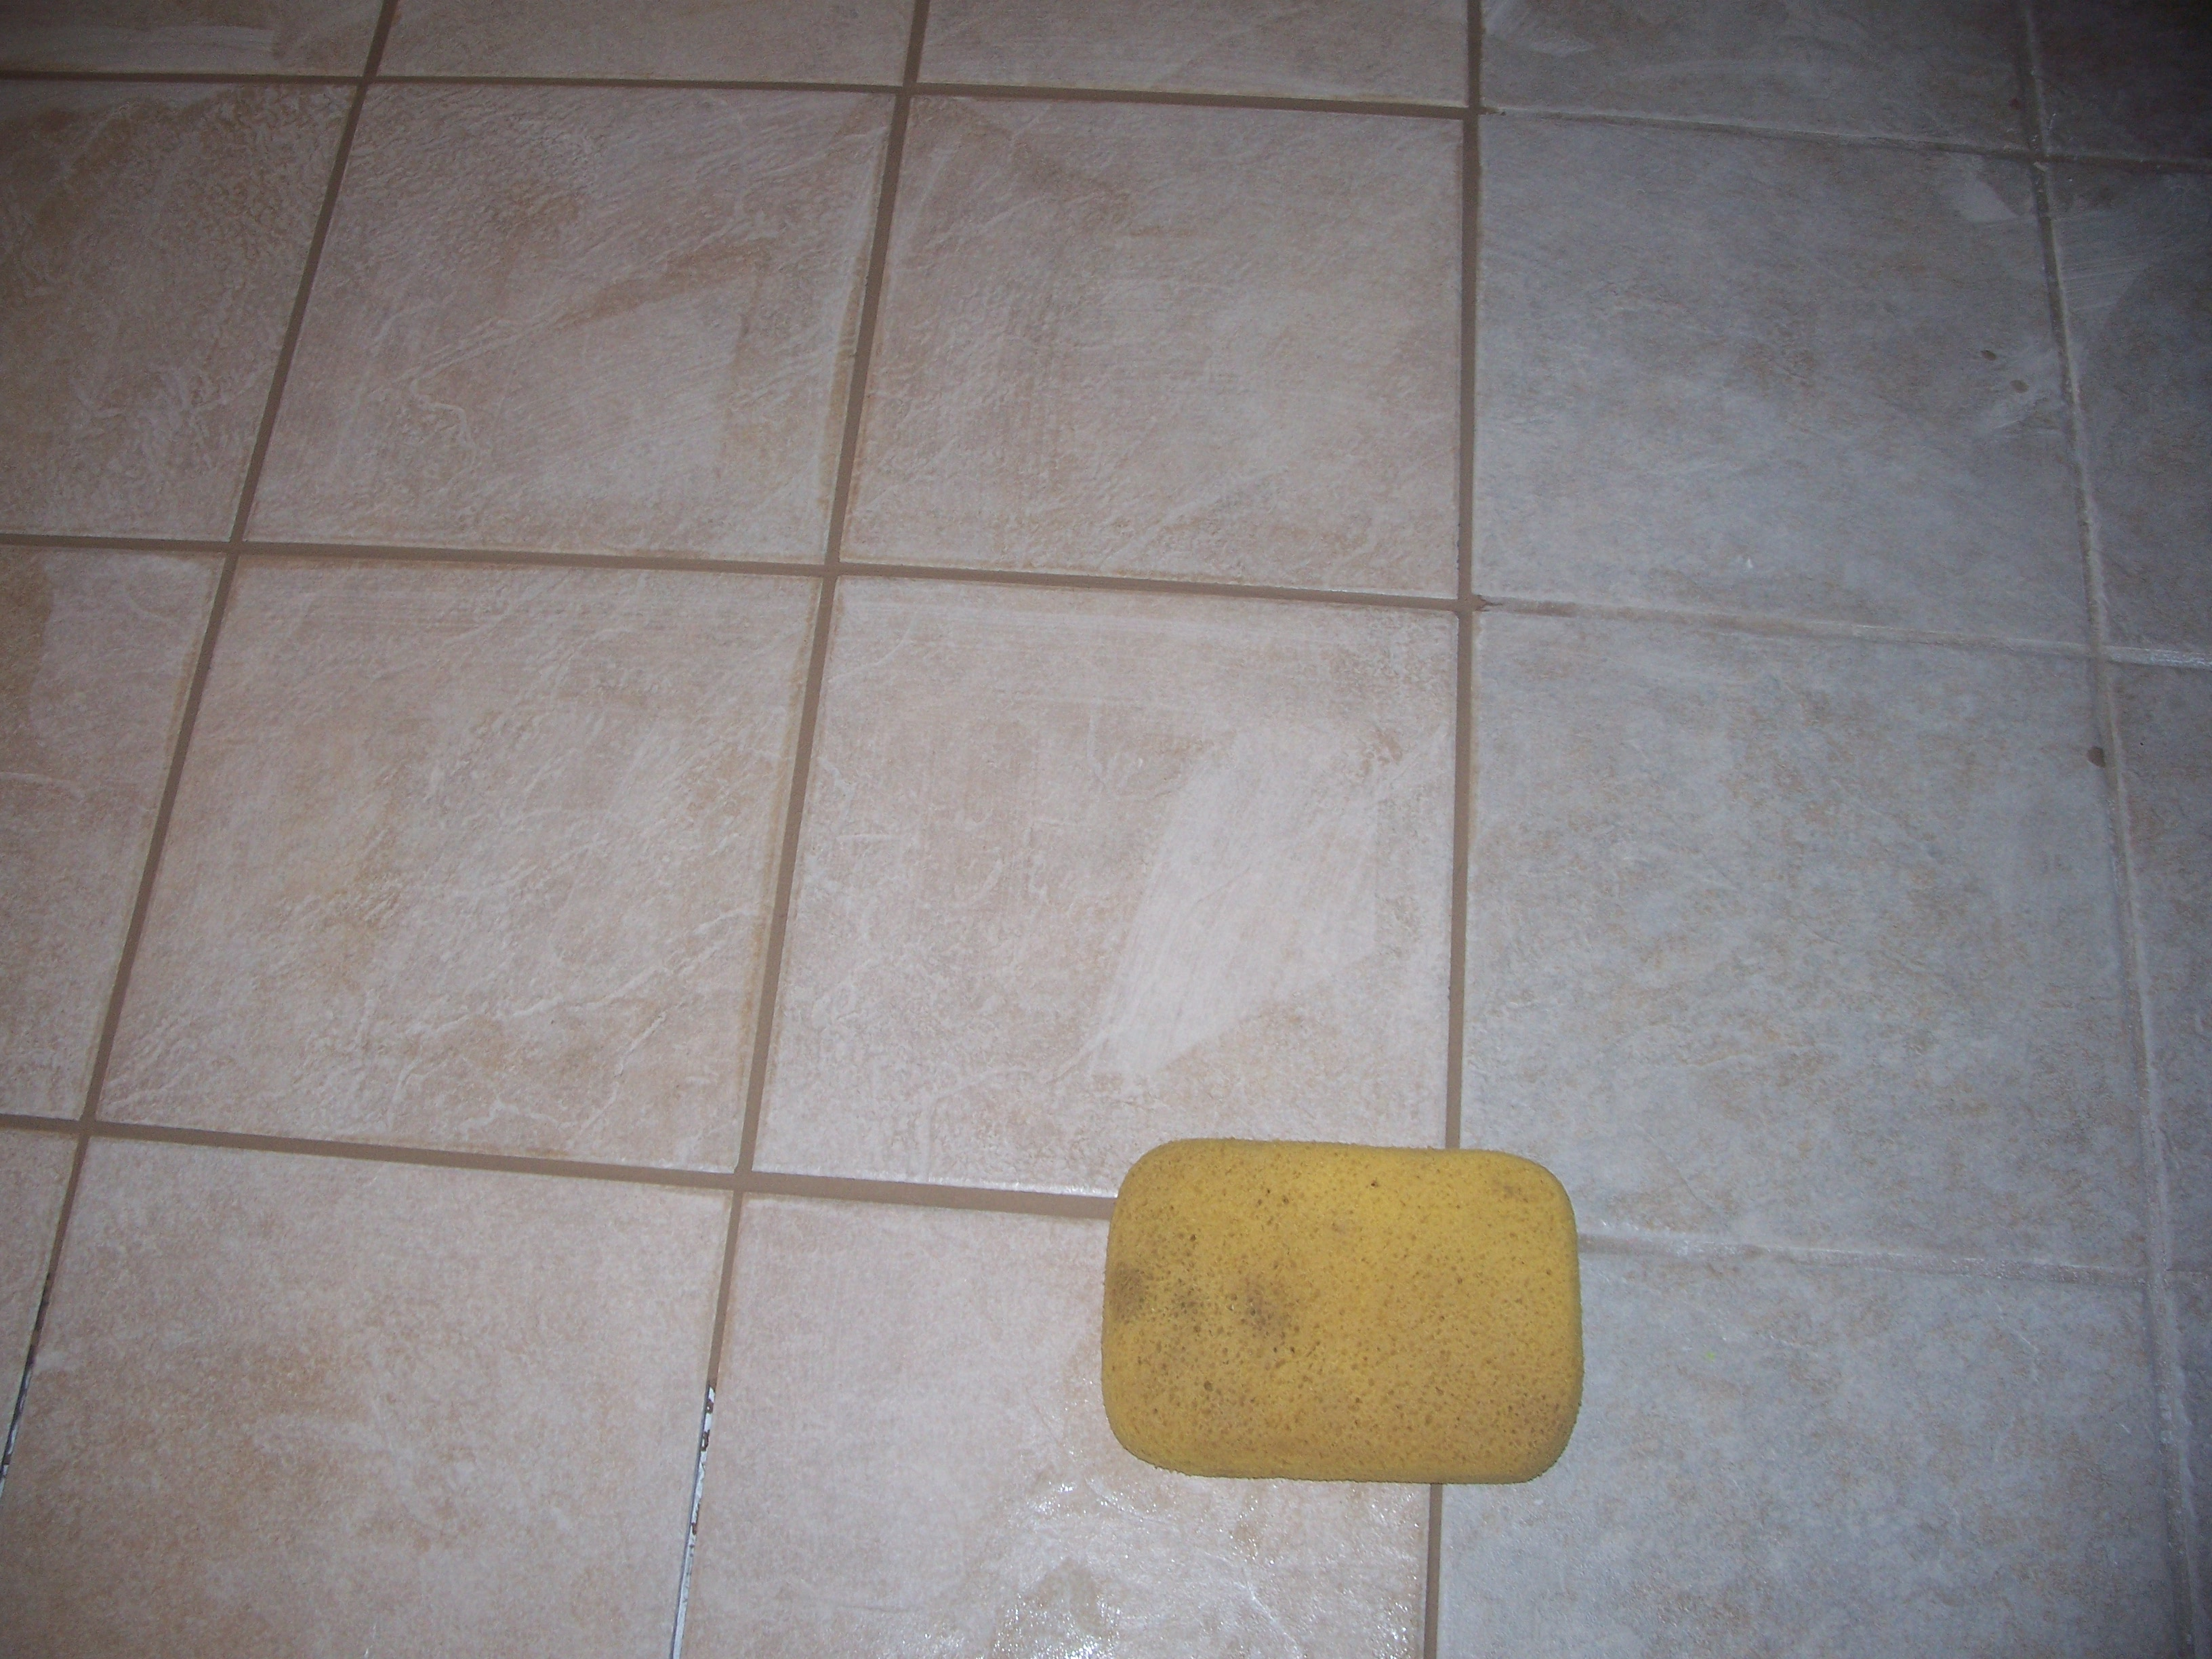 DIY Grouting Ceramic Tile DIY With Kathy - Cleaning dried grout off tile